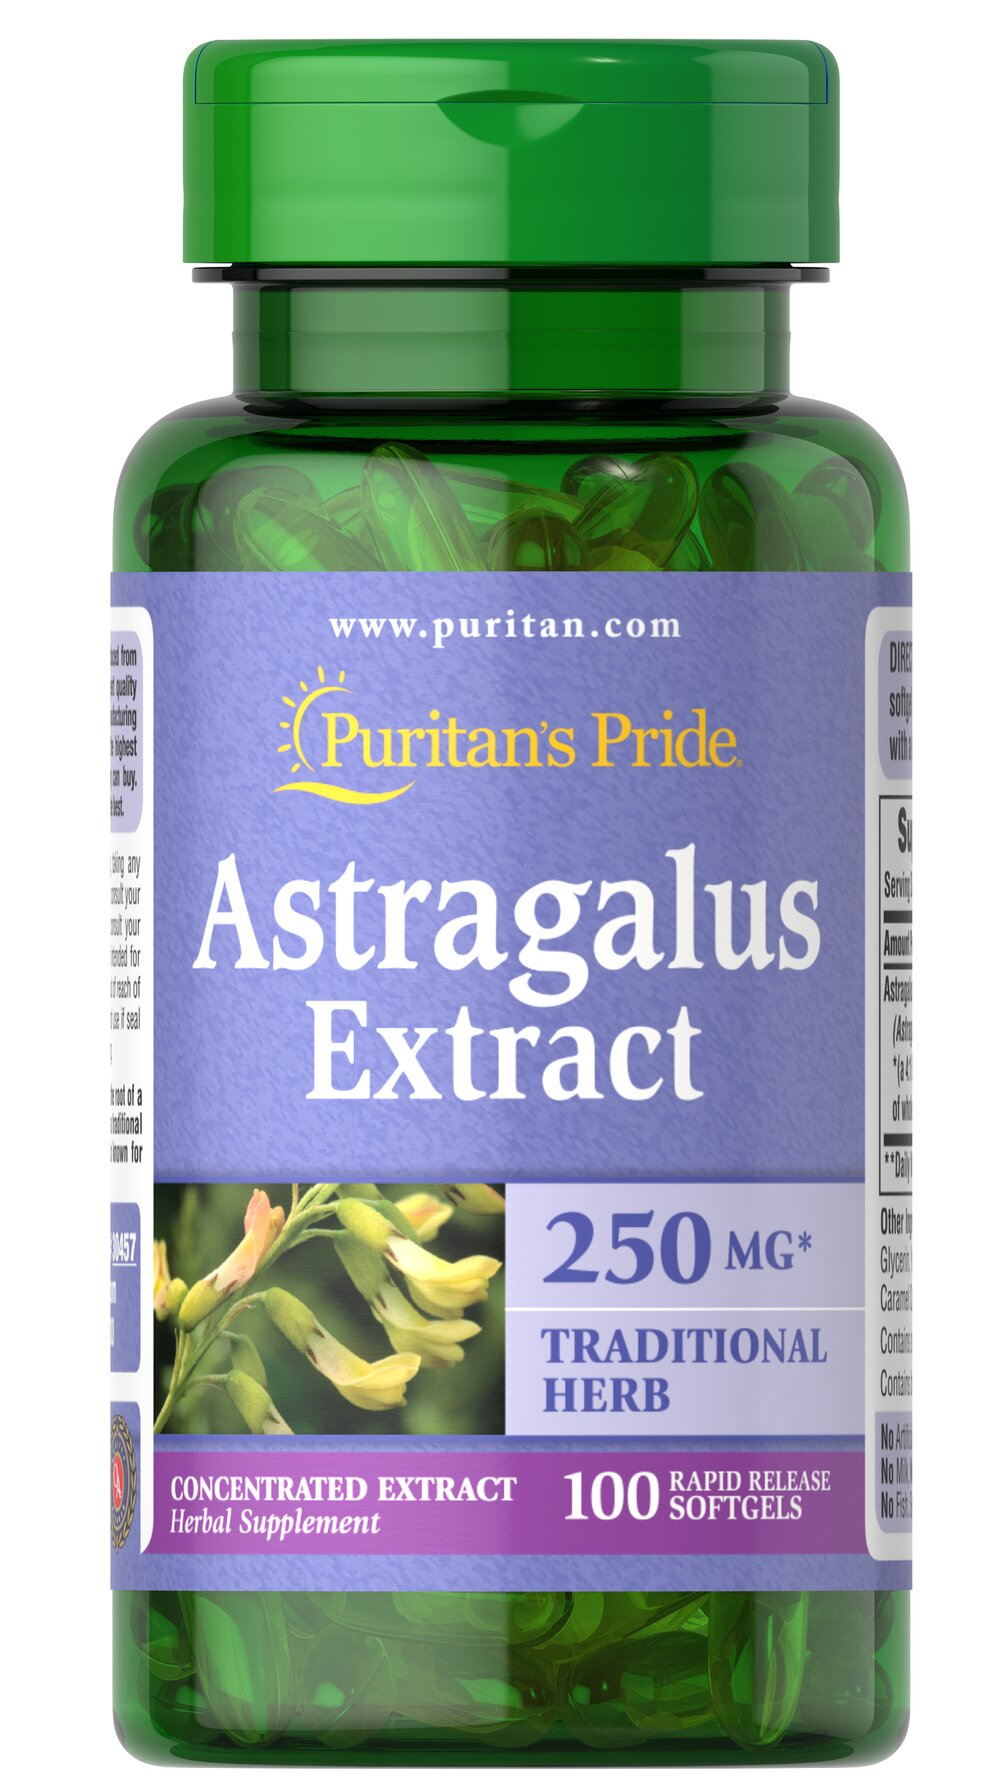 Astragalus Extract 1000 mg* <p>Traditional Chinese Herb </p><p>Astragalus contains naturally occurring flavonoids and polysaccharides. As a traditional Chinese herb, Astragalus is known for its goodness.</p> 100 Softgels 1000 mg $15.39